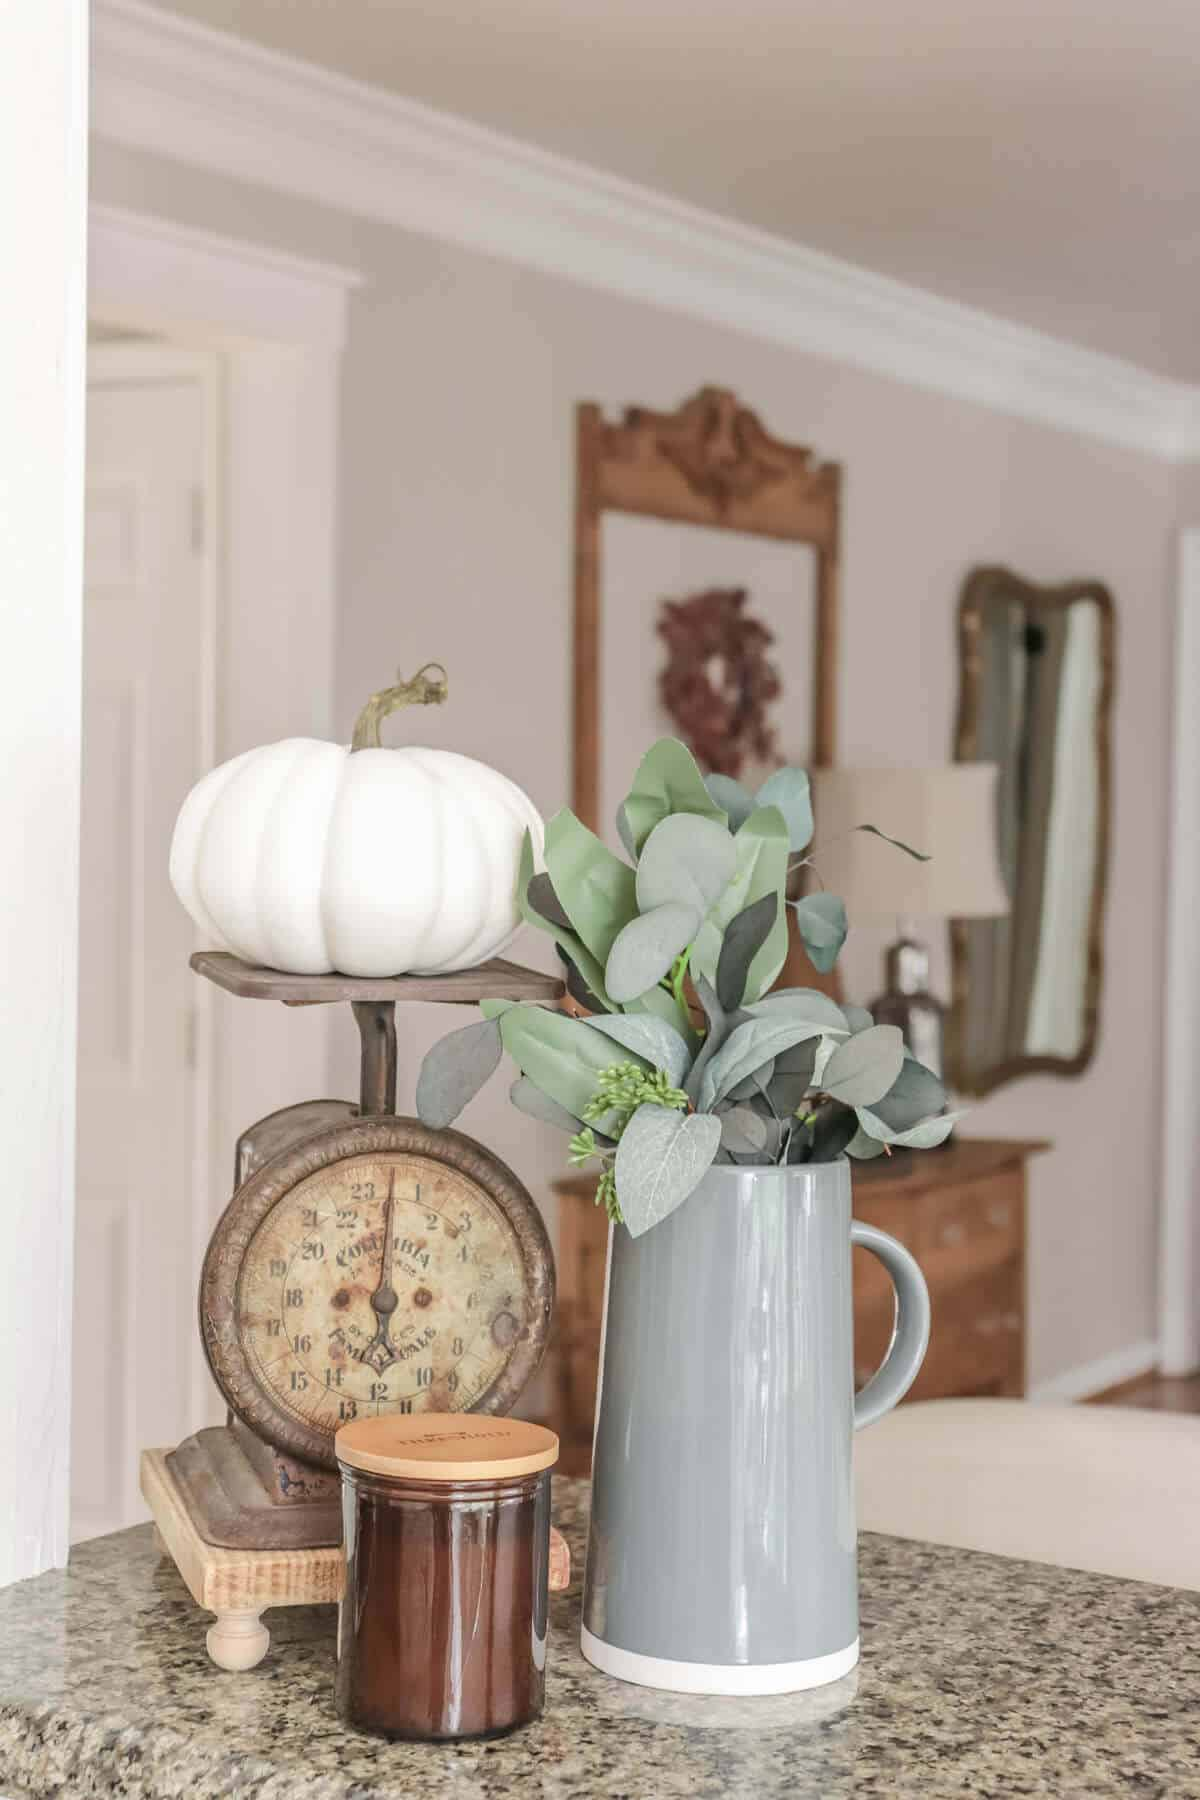 rusty vintage kitchen scale decorated for fall with a white pumpkin, gray pitcher filled with dried eucalyptus and a small candle